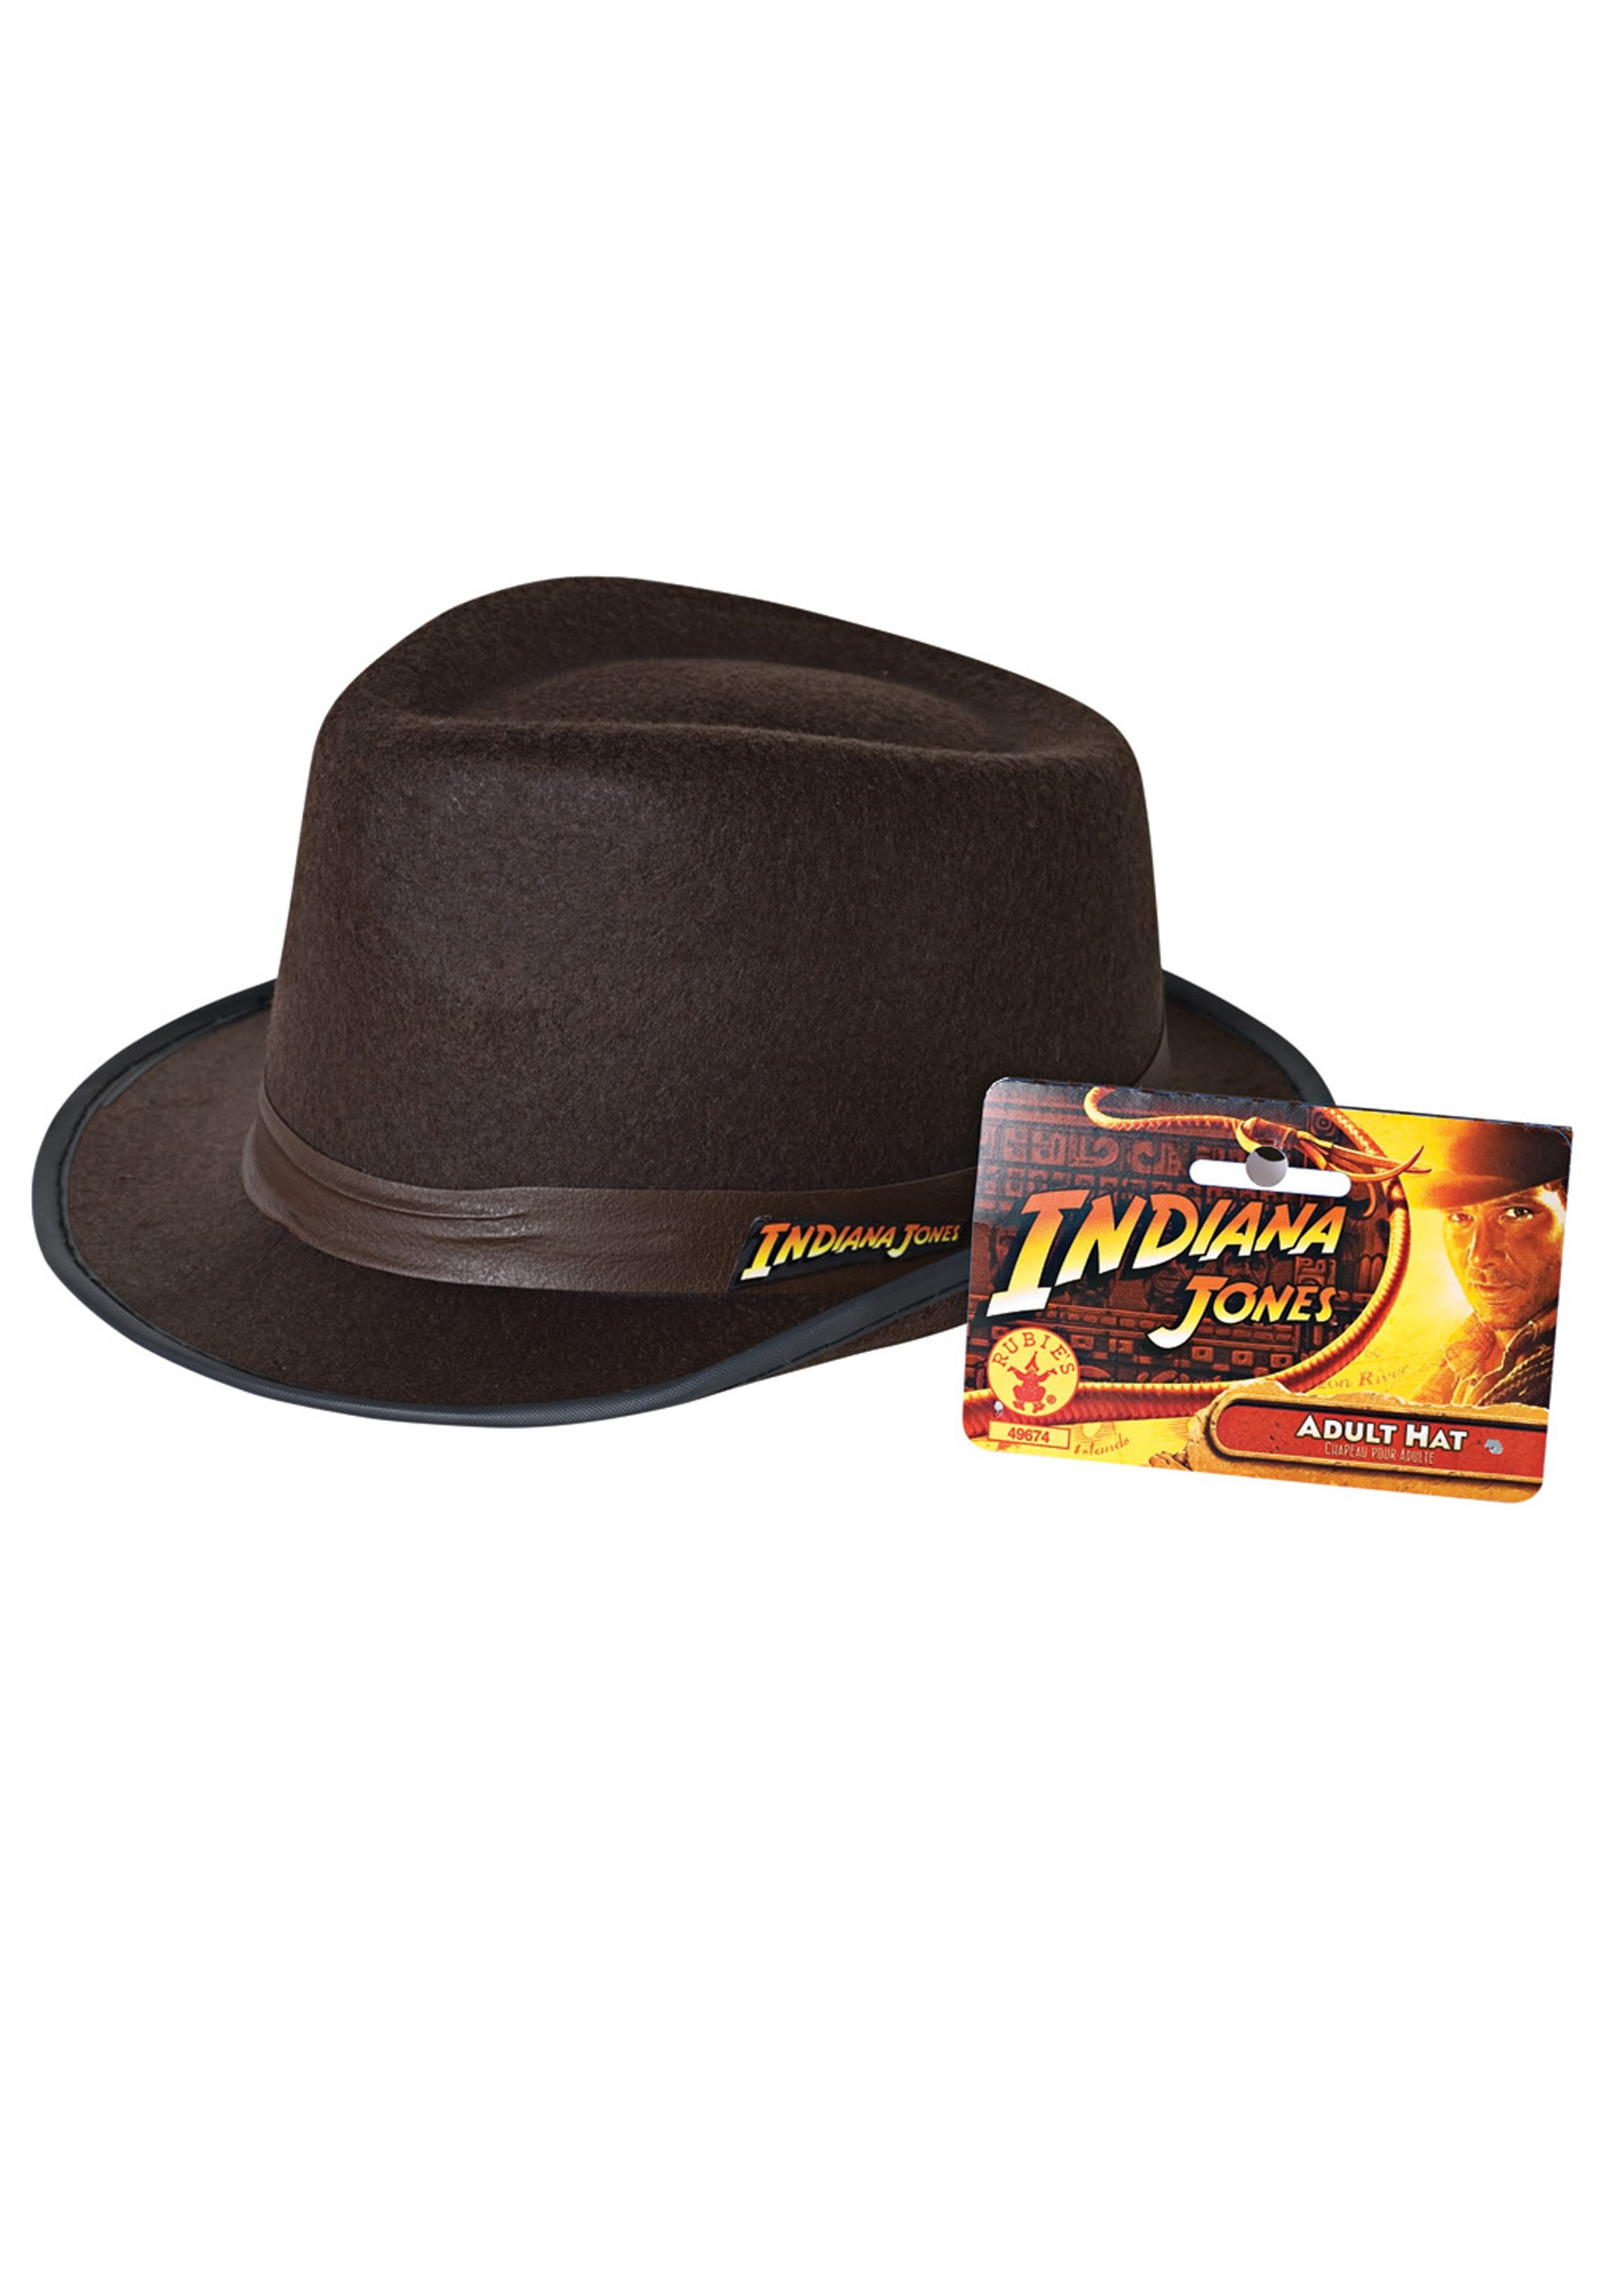 54e18de21e3f9 Sombrero de Indiana Jones para adulto